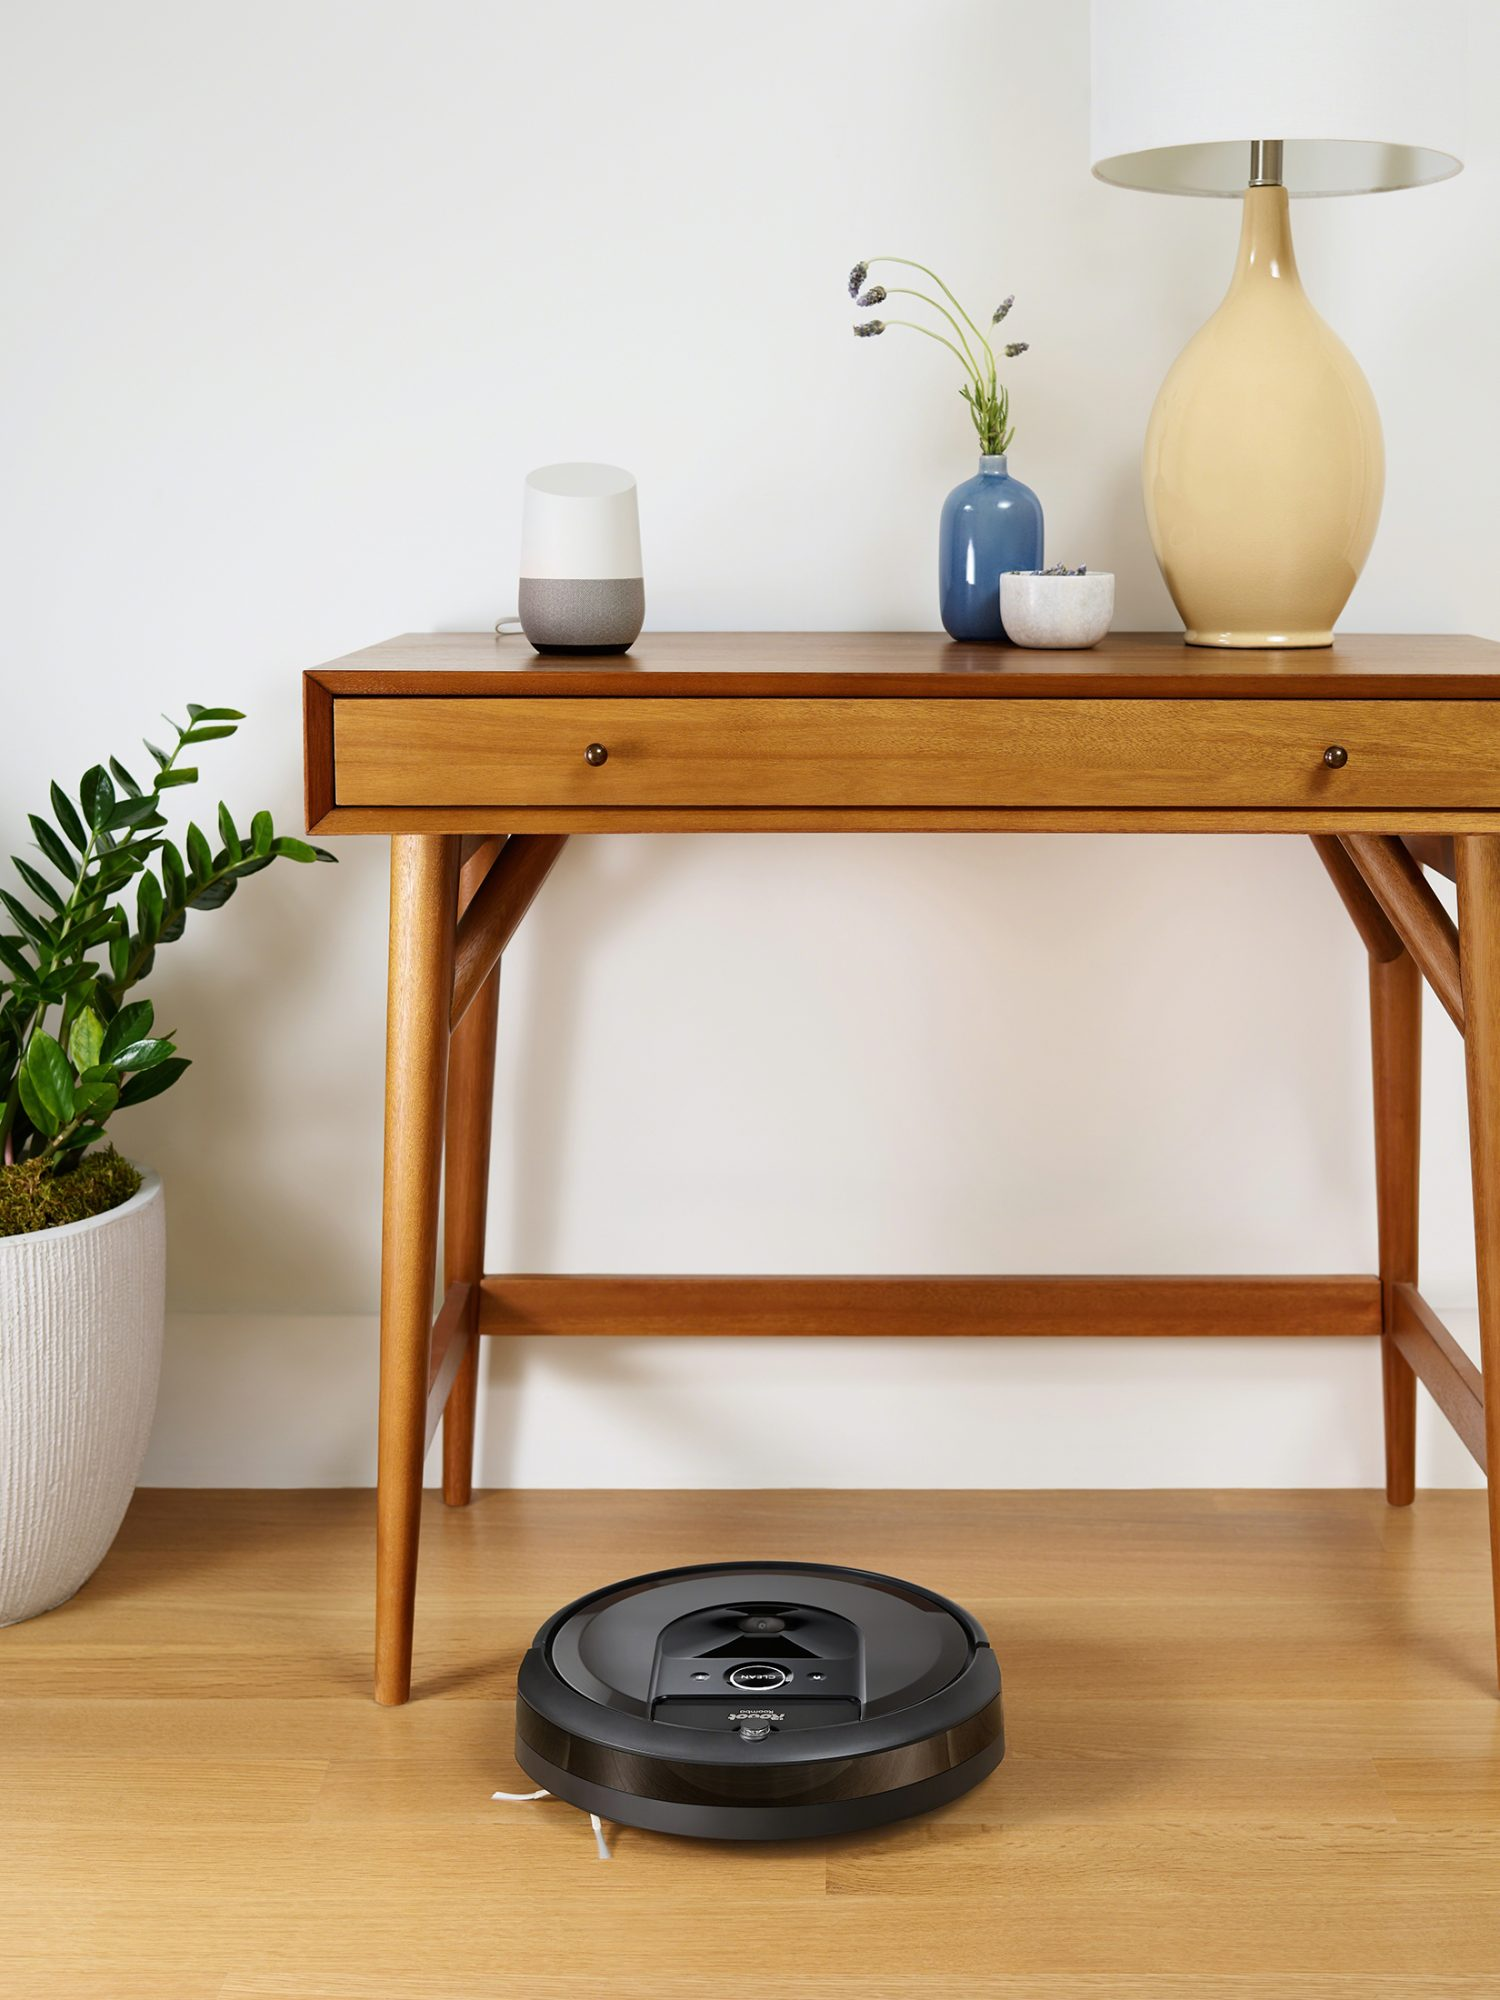 irobot roomba smart vacuum on hardwood floor